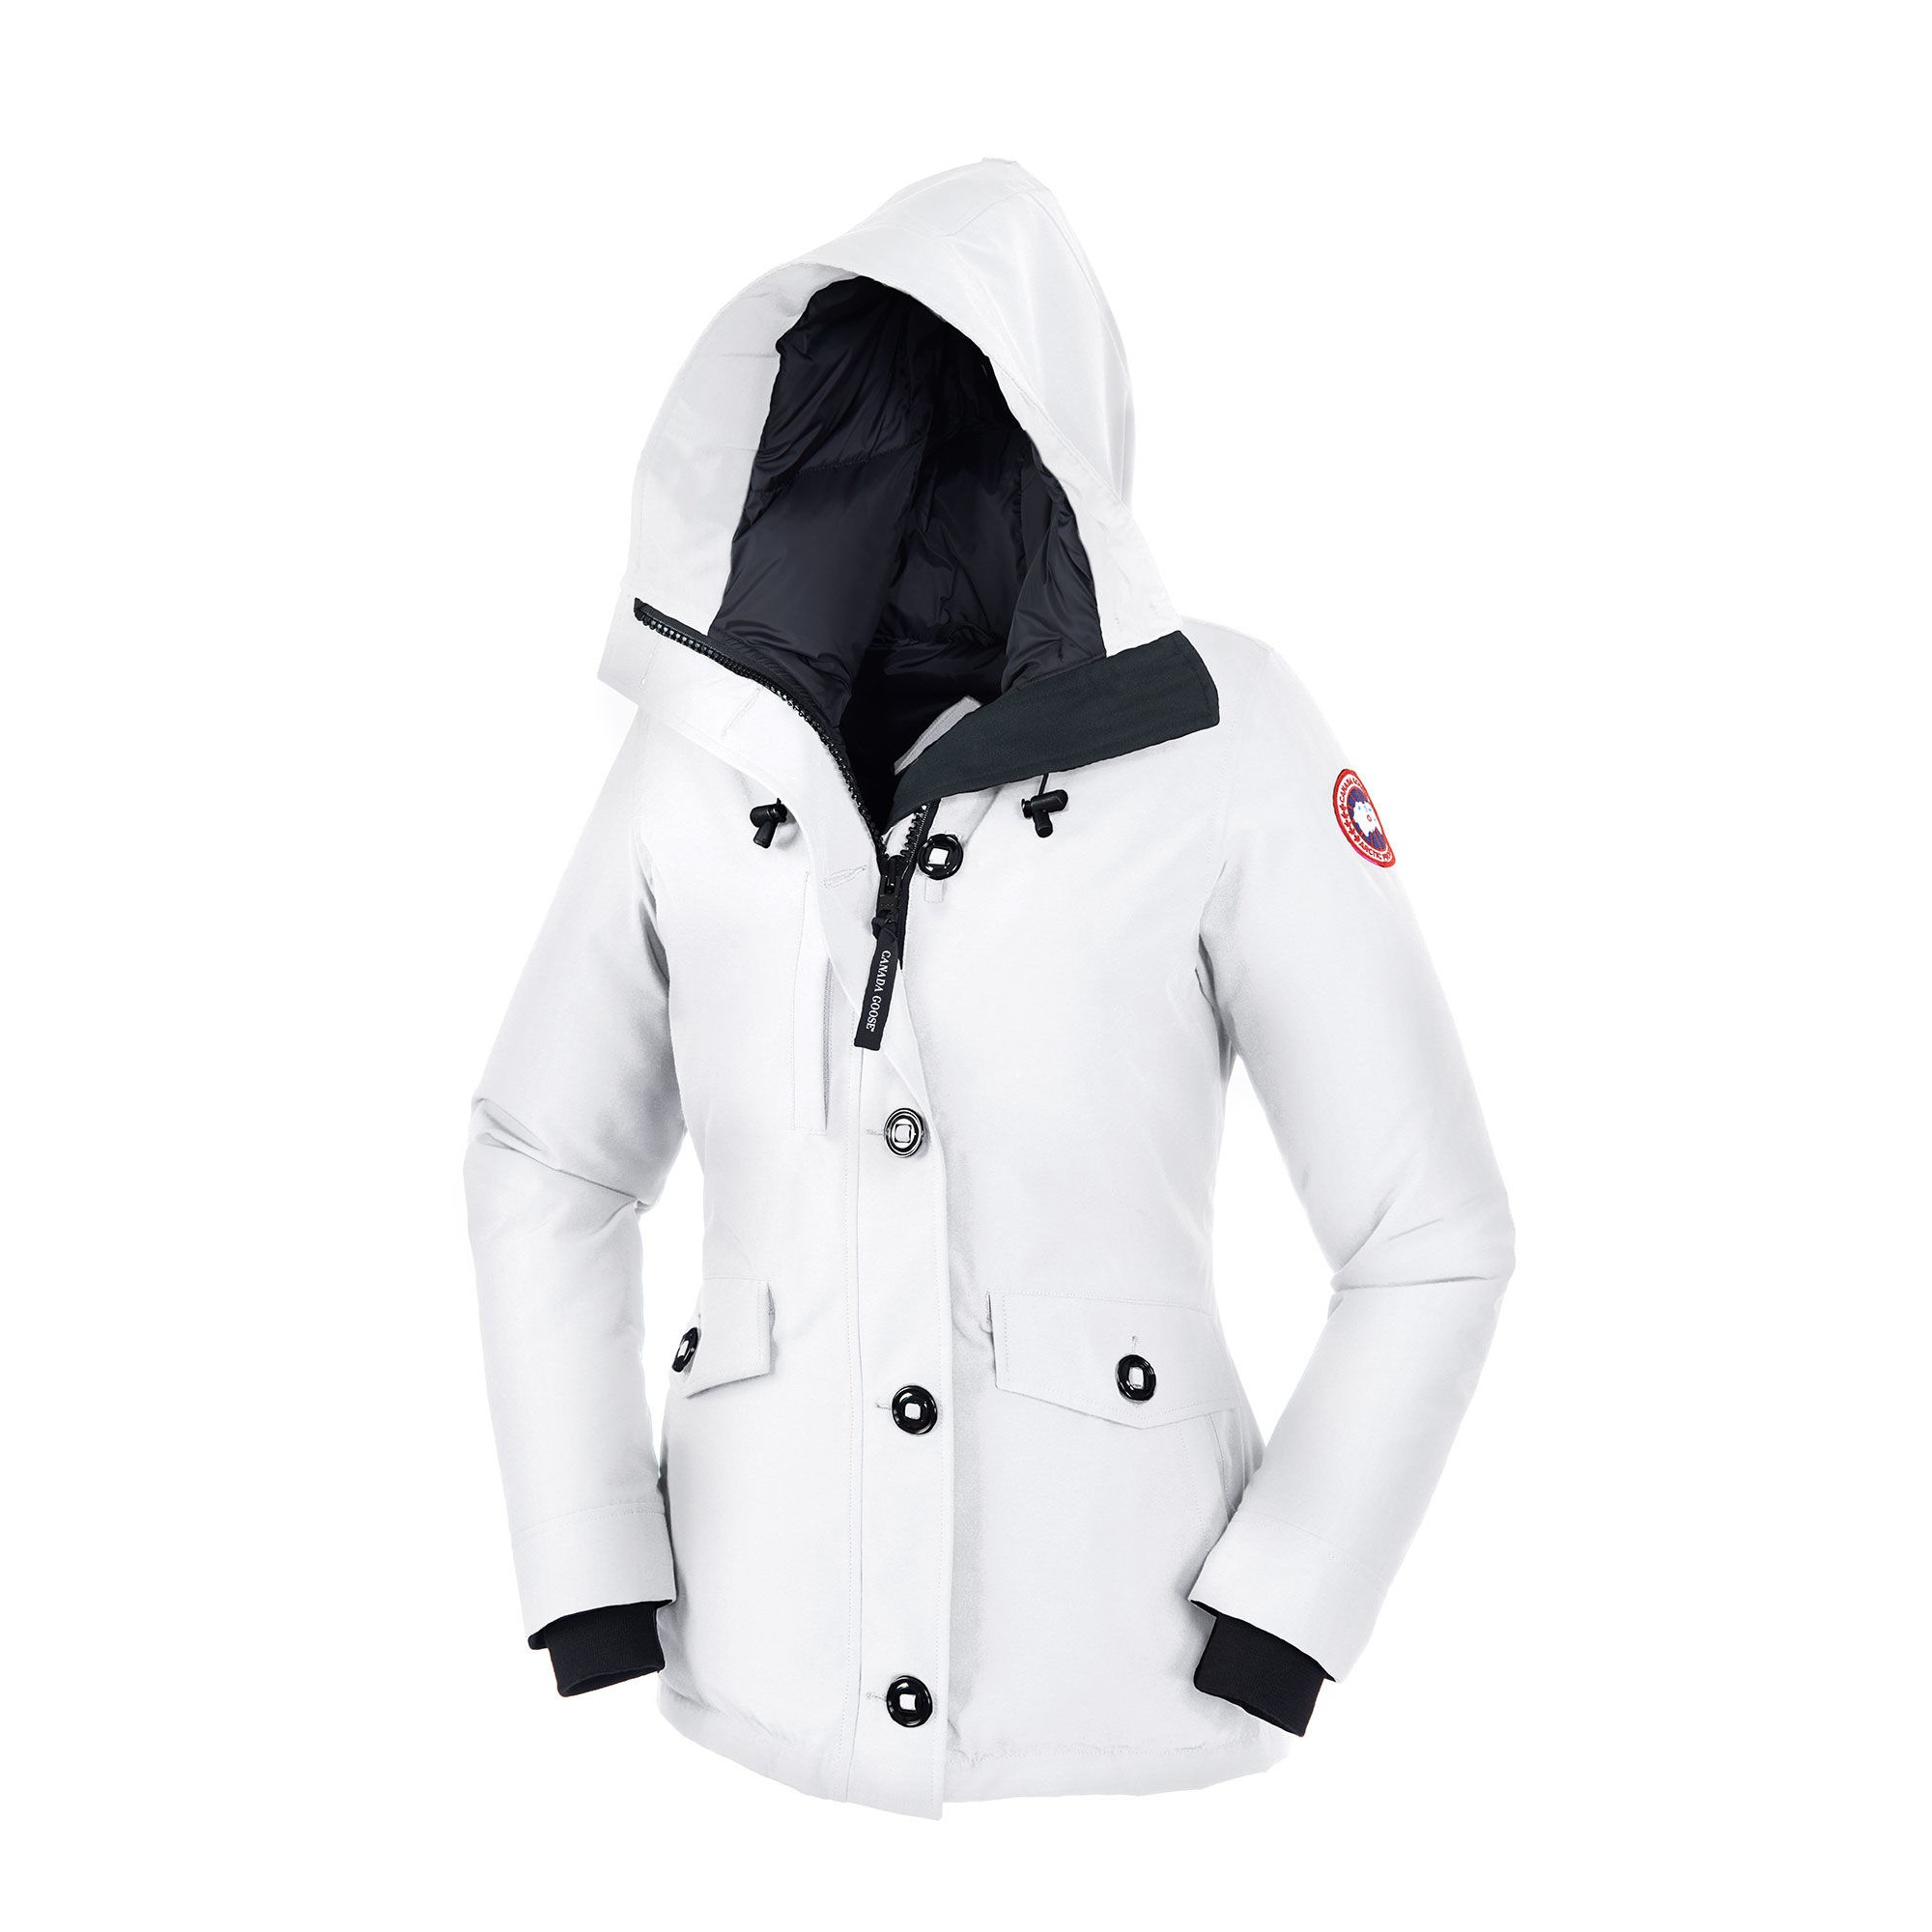 CANADA GOOSE RIDEAU PARKA White WOMENS 3800L. Display Gallery Item 1 ... 726d4f324897